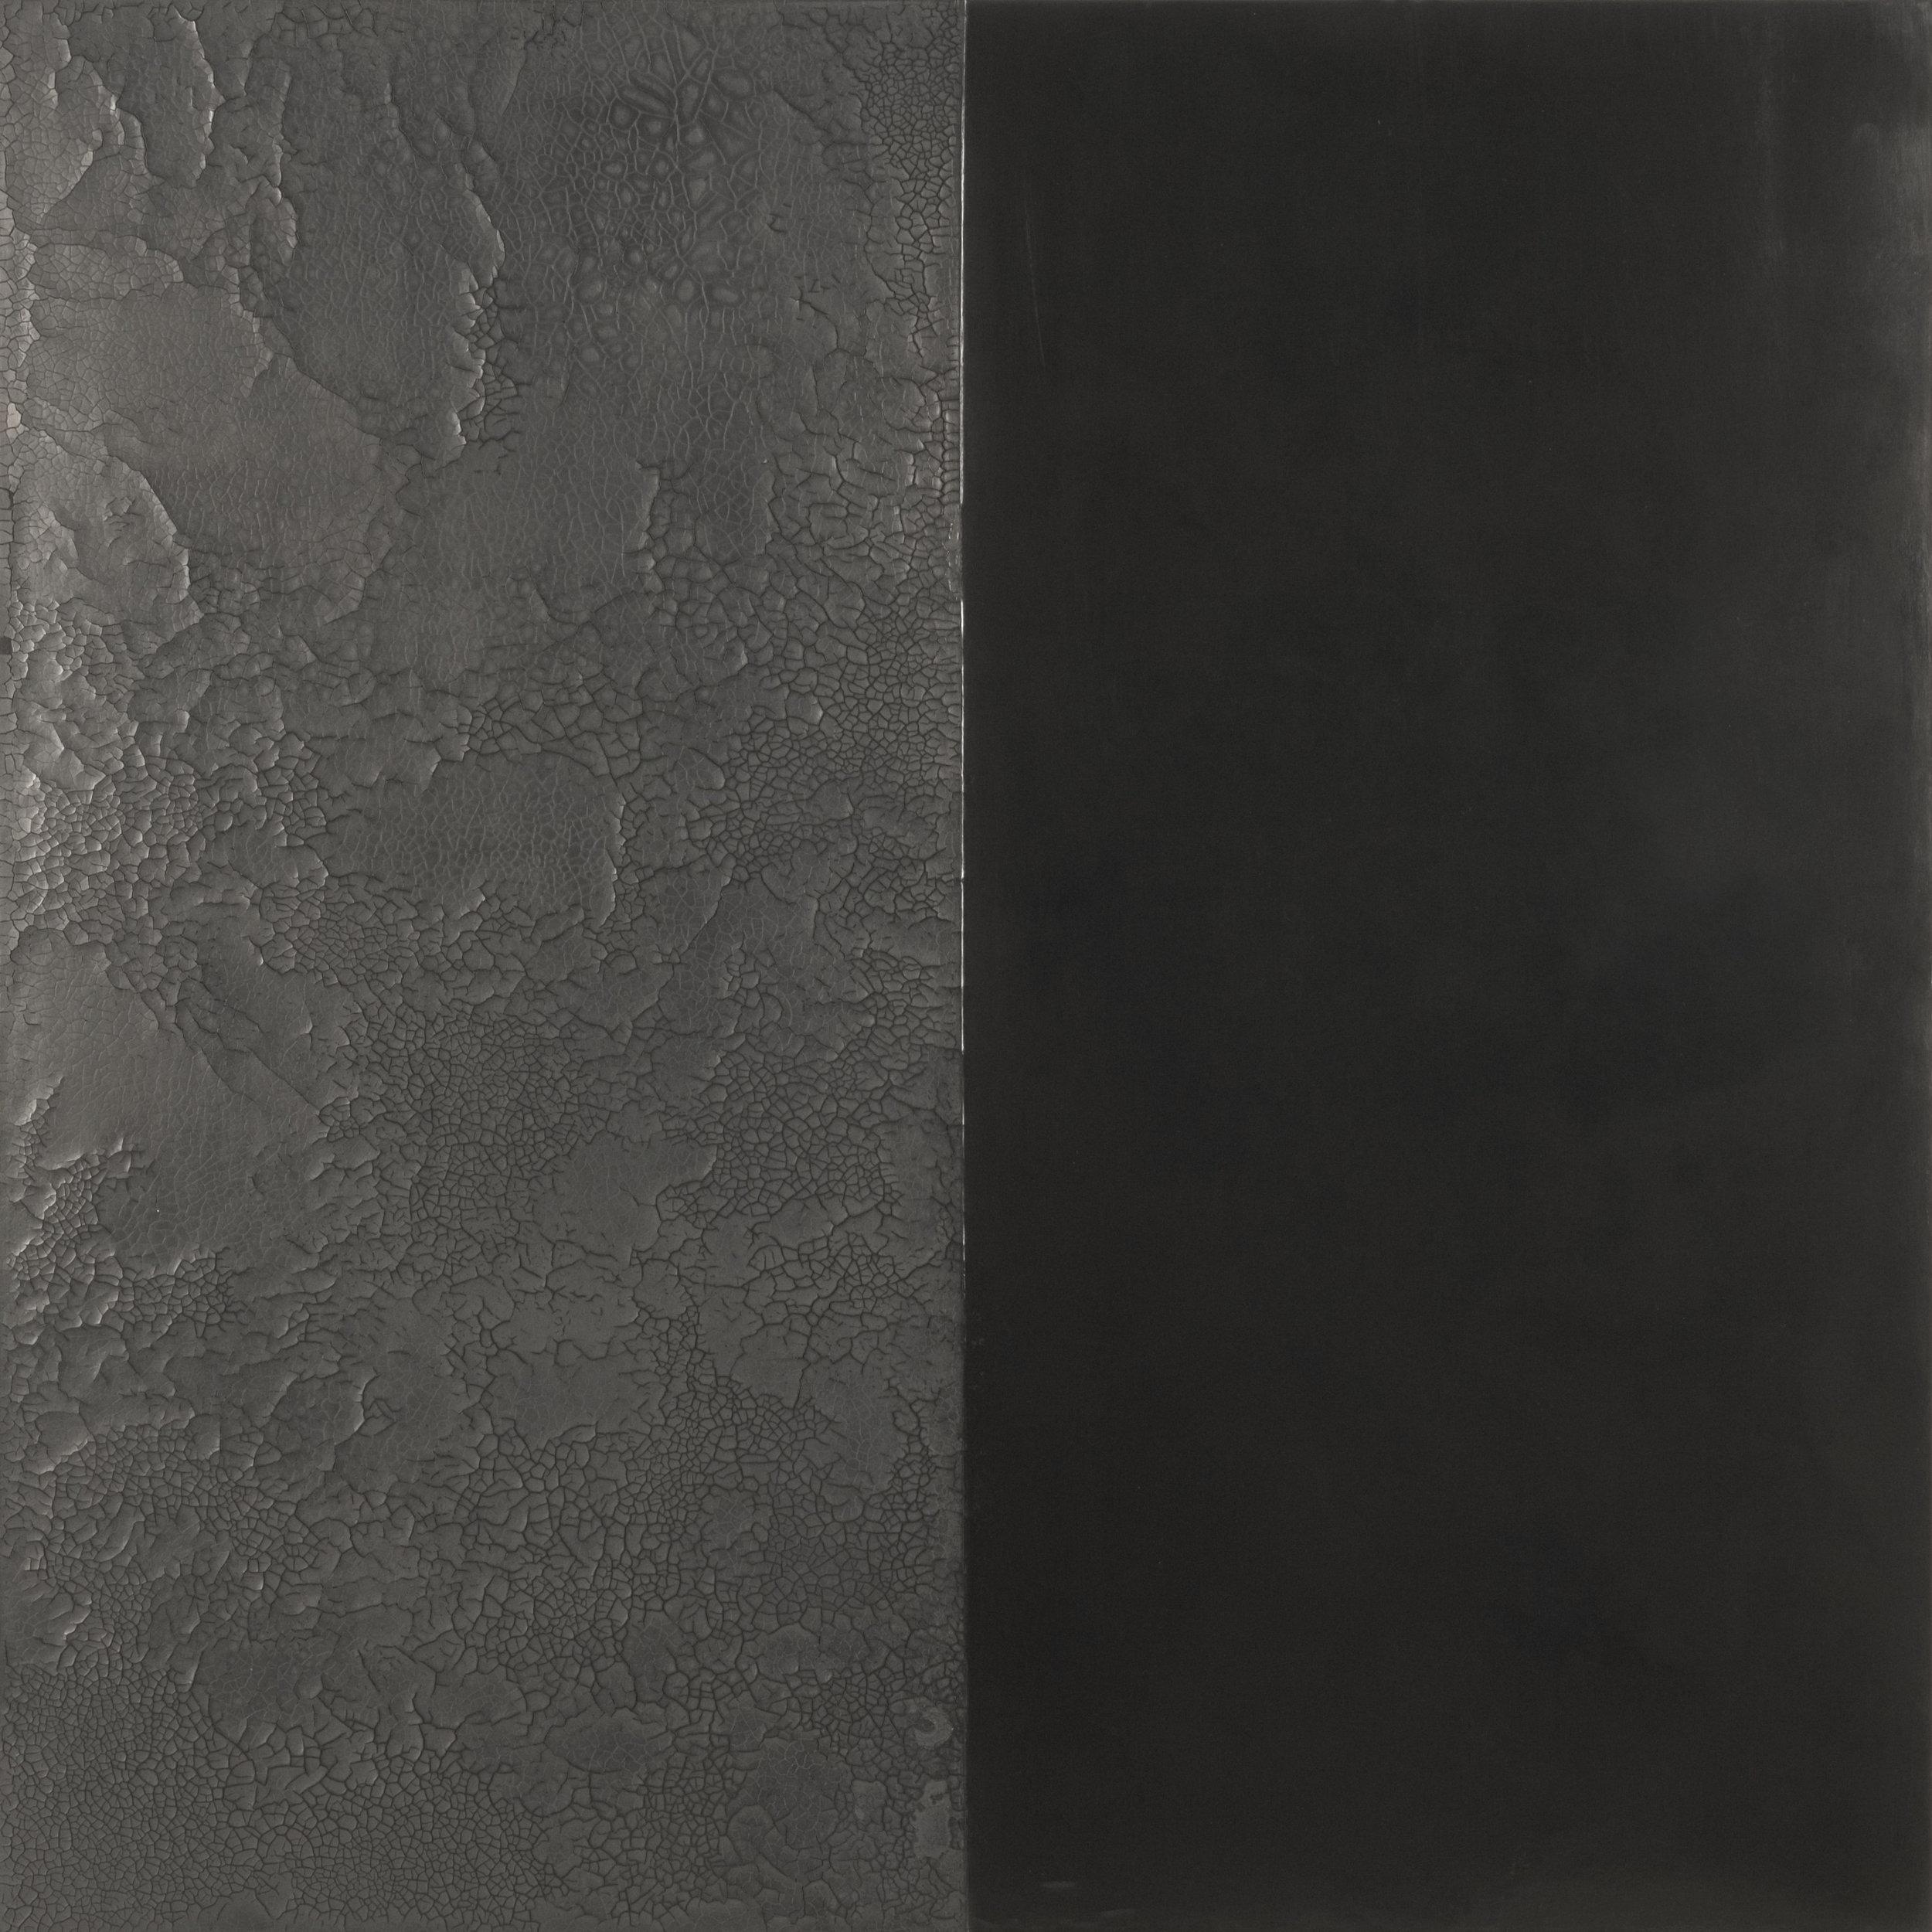 Divided Ground 2006  Wax, natural earth pigment &gesso on canvas & board  91.5 x 91.5 x 4 cm